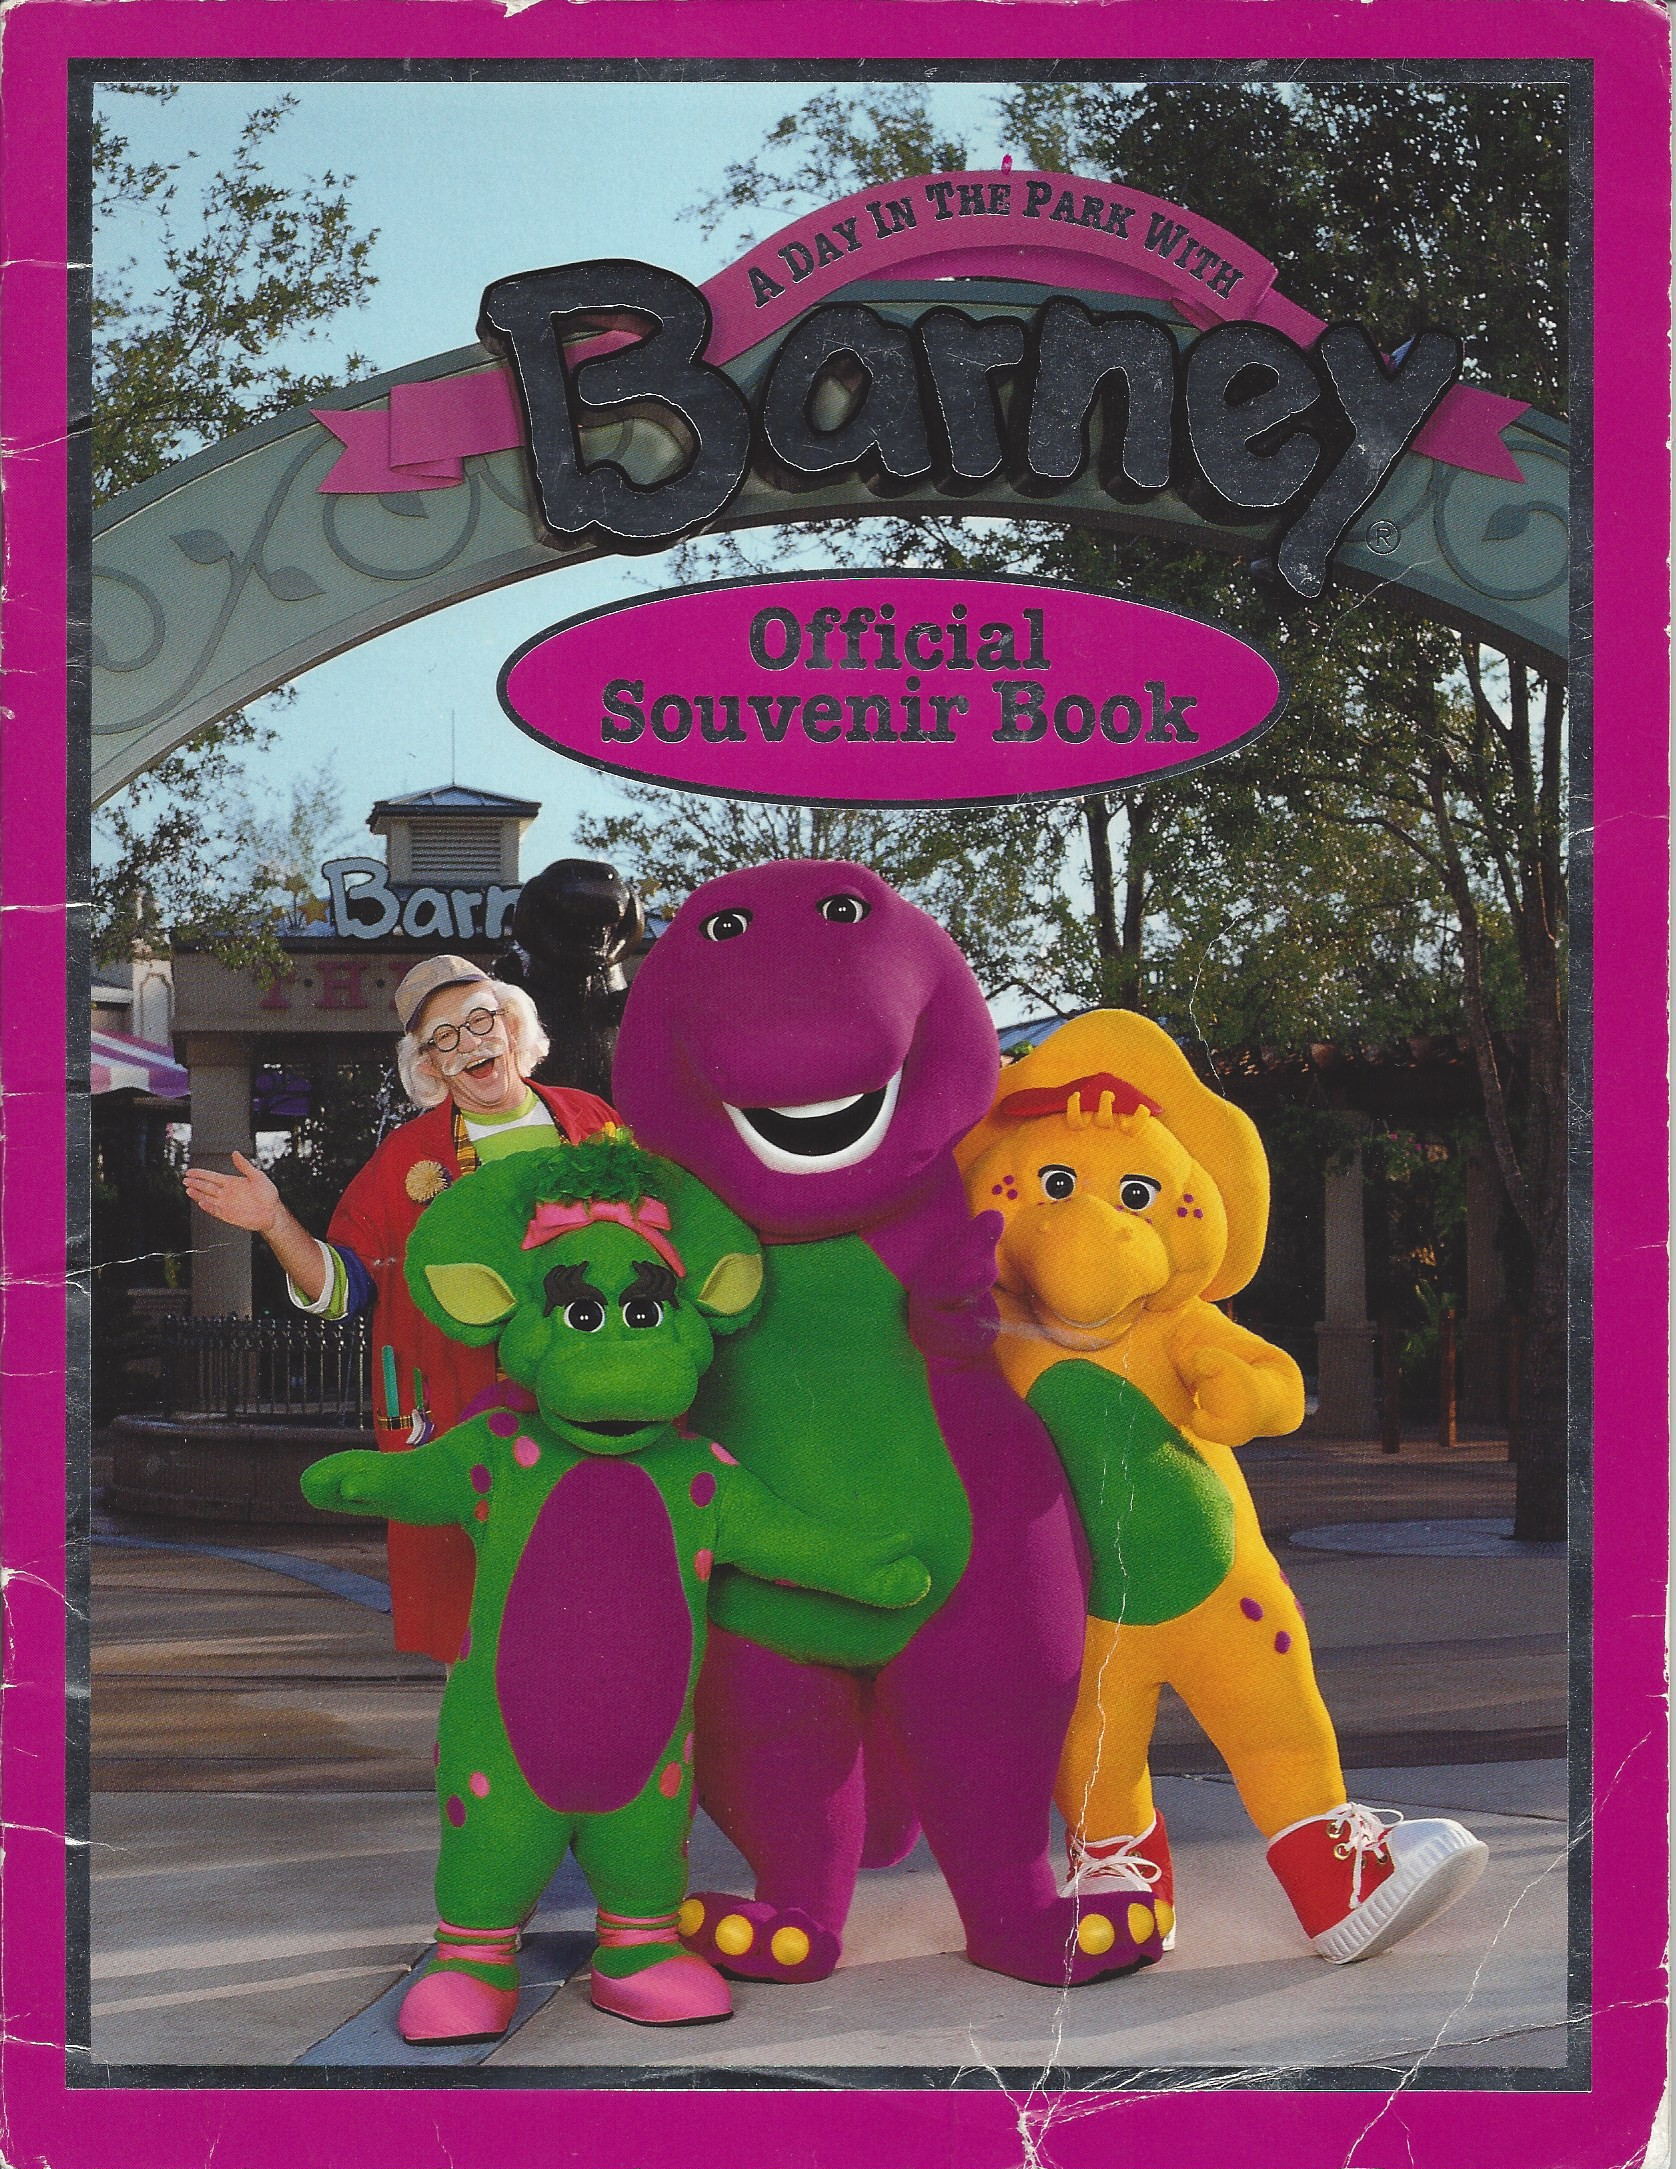 A Day in the Park with Barney | Barney Wiki | FANDOM powered by Wikia